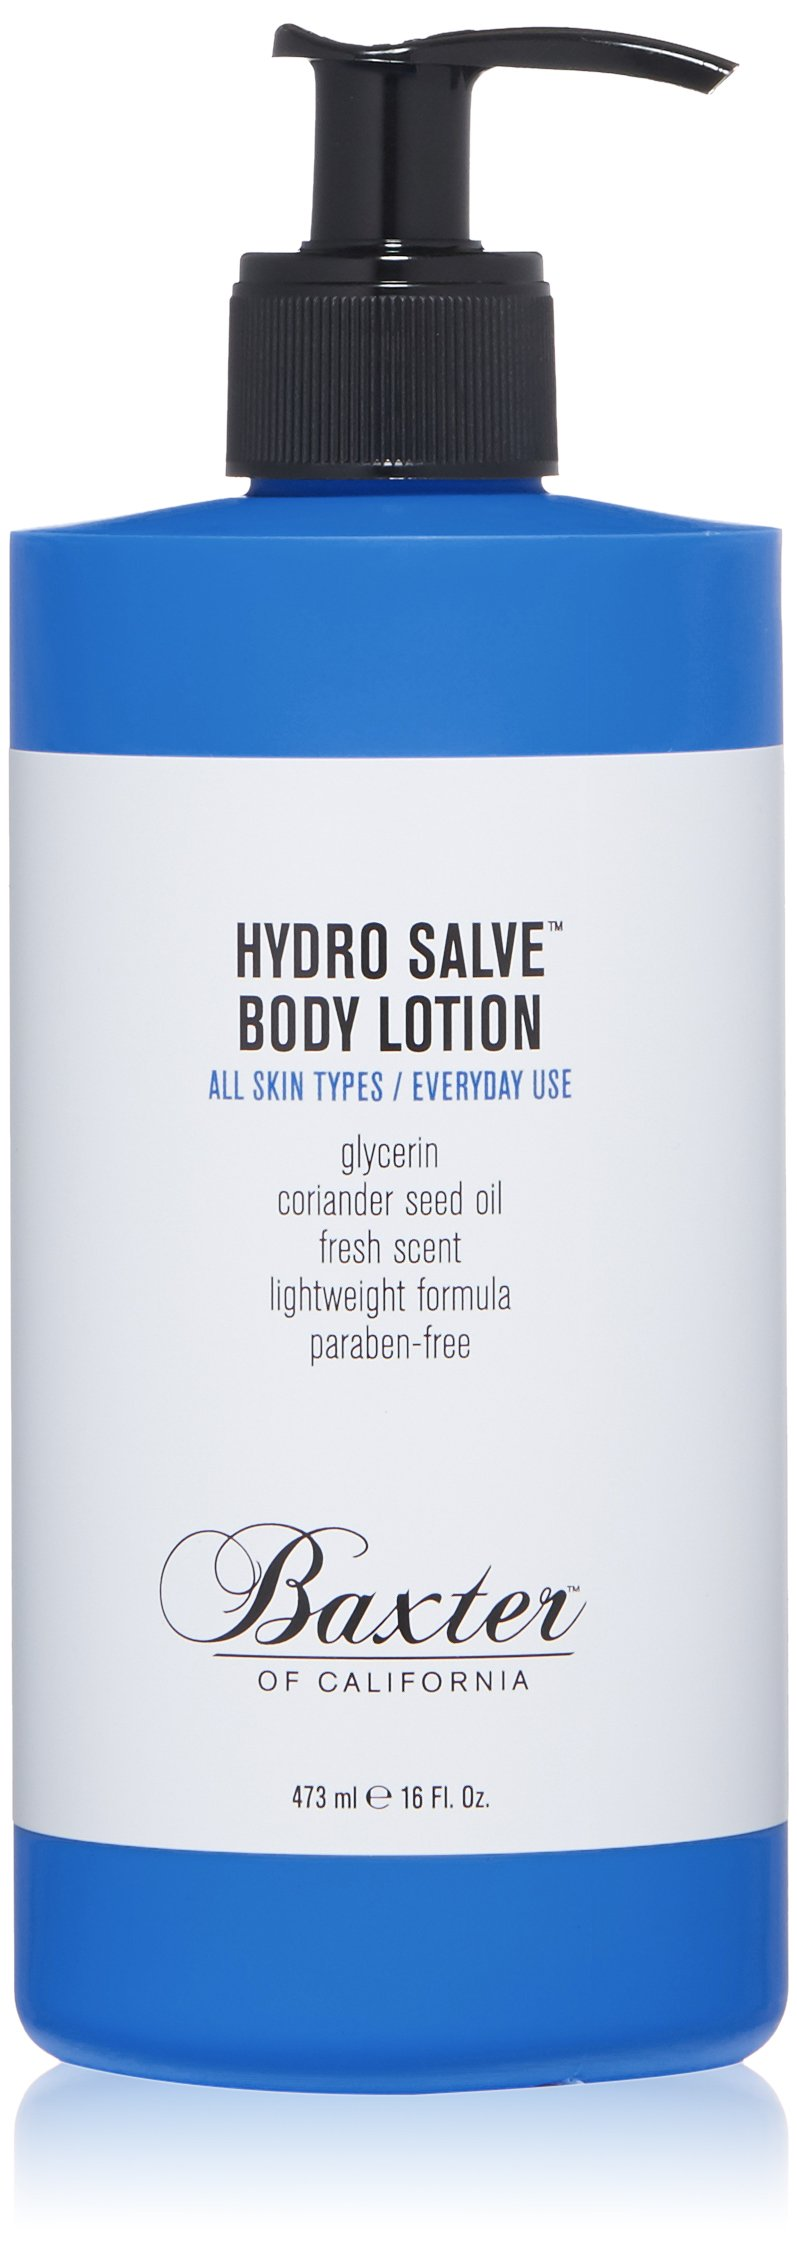 Baxter of California Hydro Salve Body Lotion for Men | For All Skin Types | 16 oz